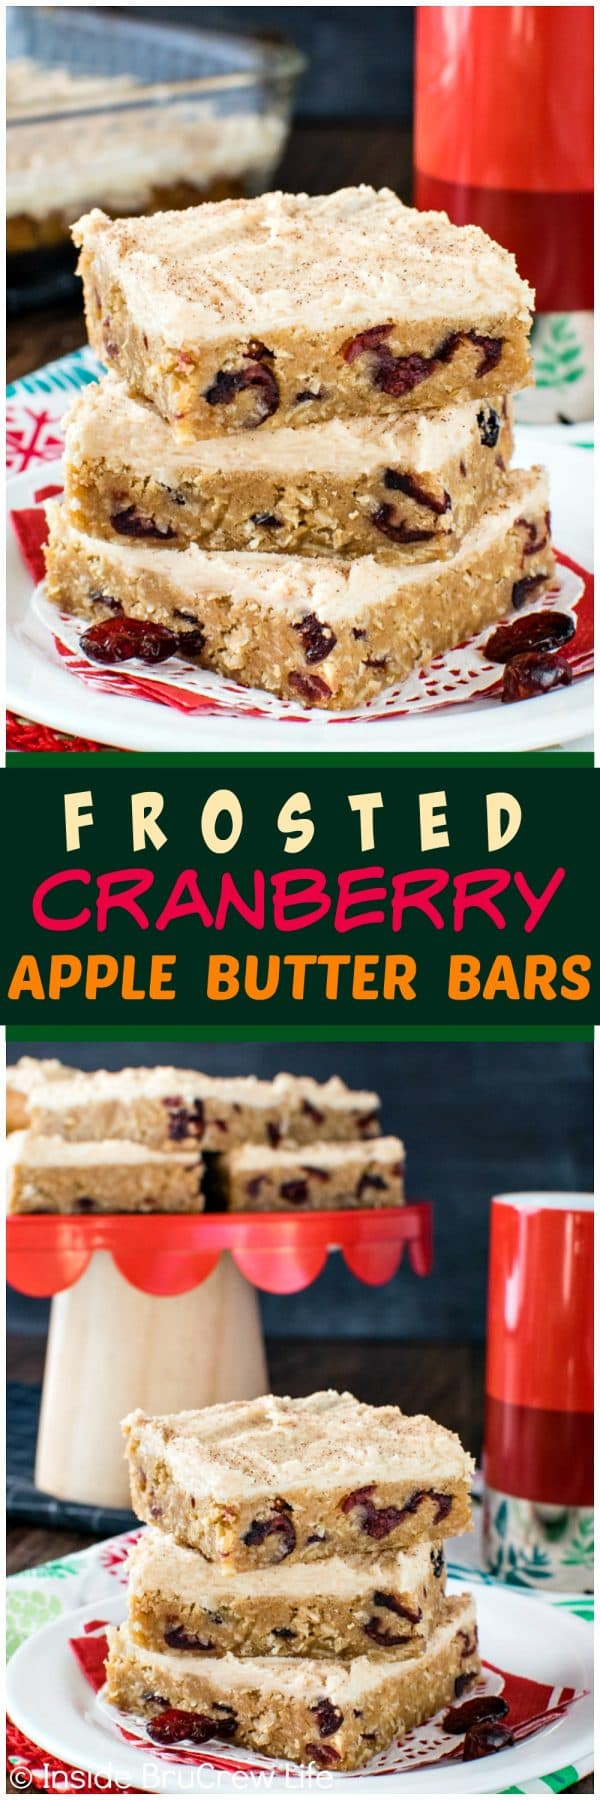 Frosted Cranberry Apple Butter Bars - this easy oatmeal bar recipe is loaded with cranberries and topped with a sweet apple butter frosting!